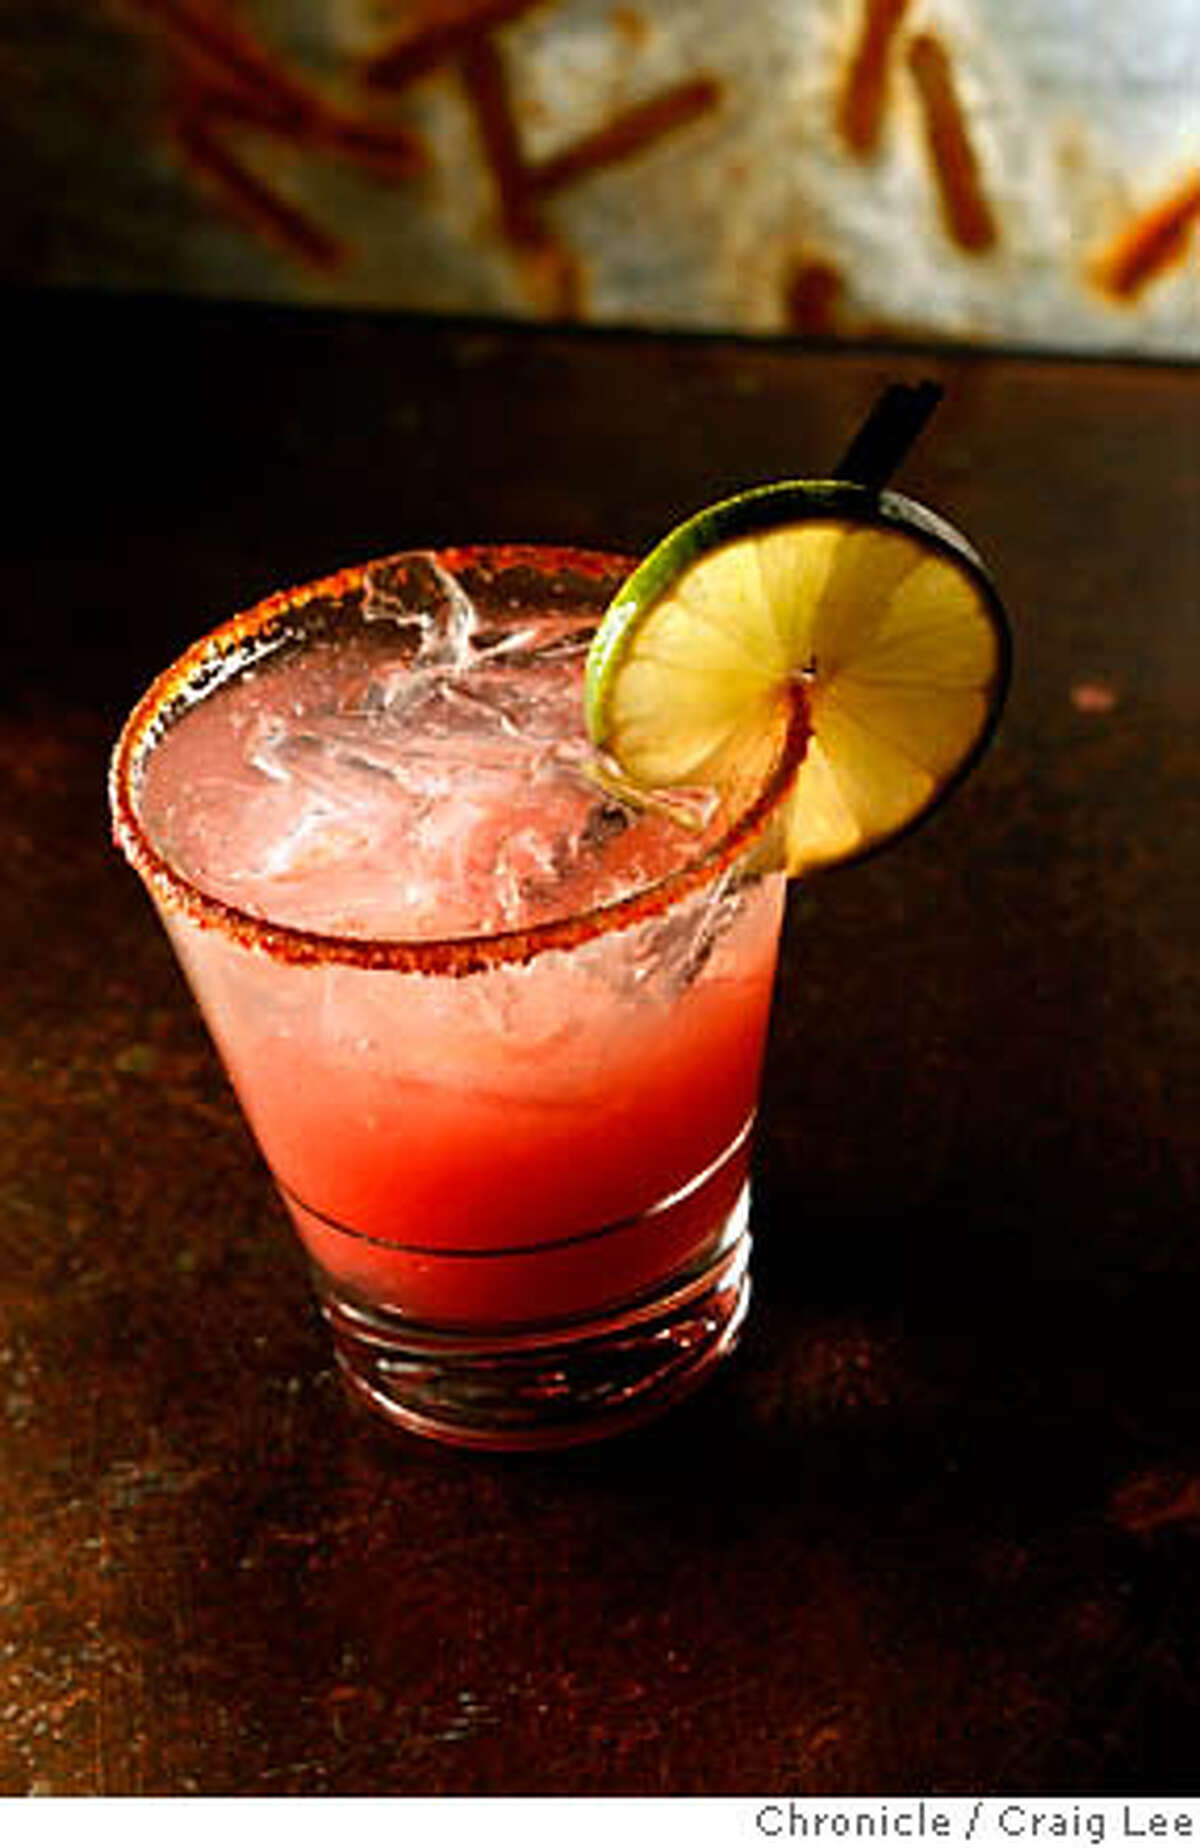 SUMMERDRINKS10_157_cl.JPG Summer drinks. Photo of a drink called the